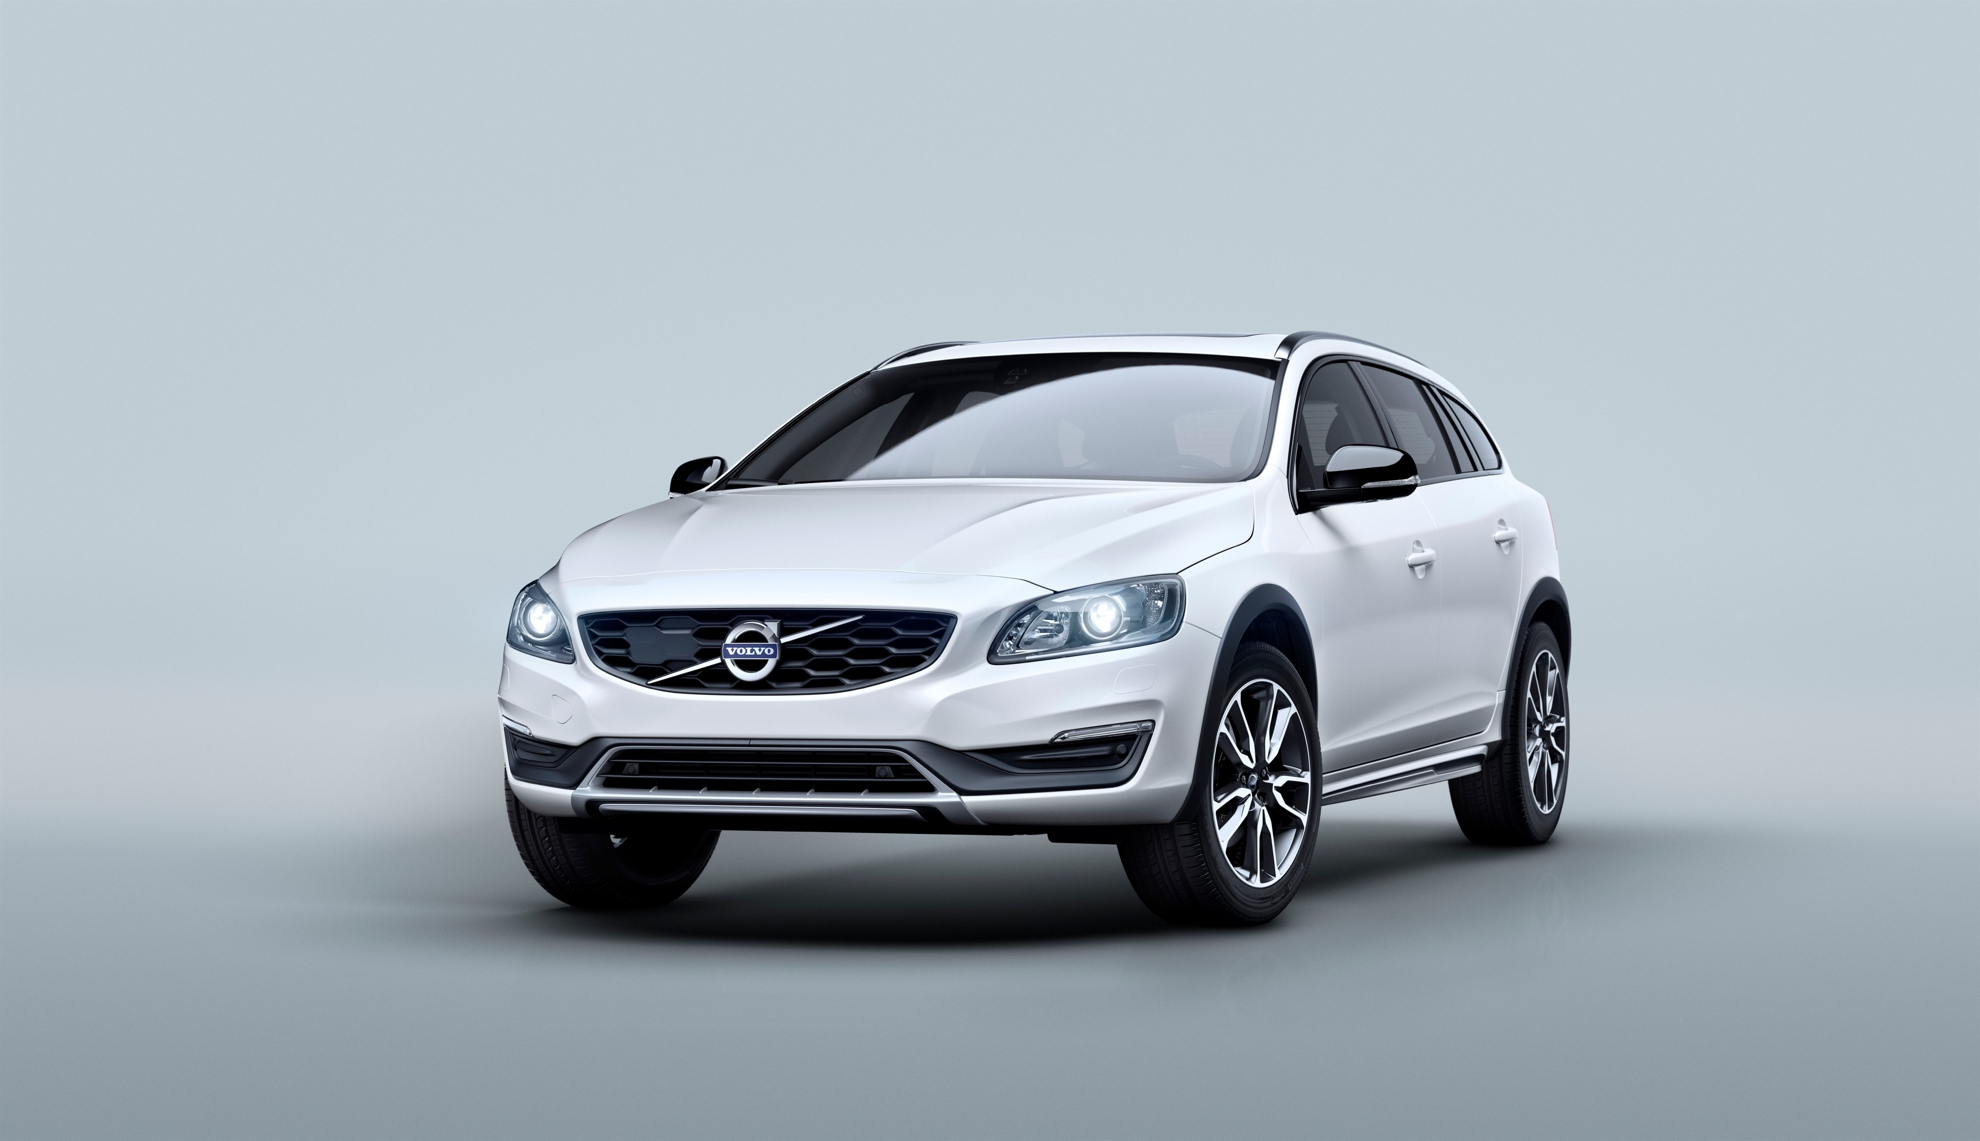 v60-cross-country-1